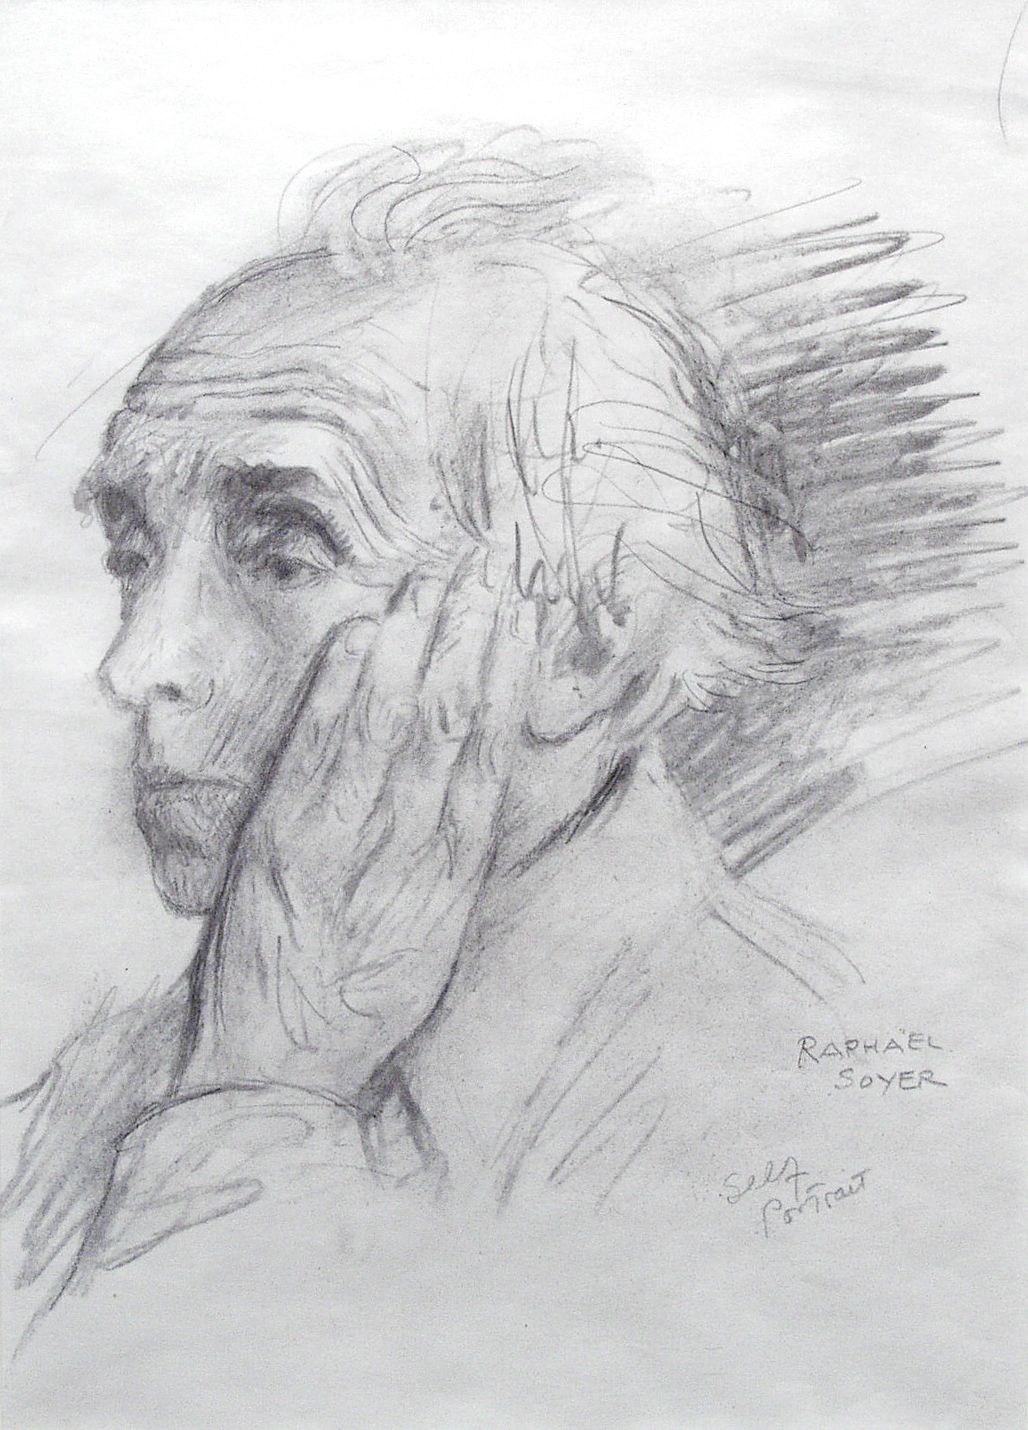 Raphael Soyer, Self-Portrait, n.d graphite on paper, 11 3/8 x 7 3/4 inches